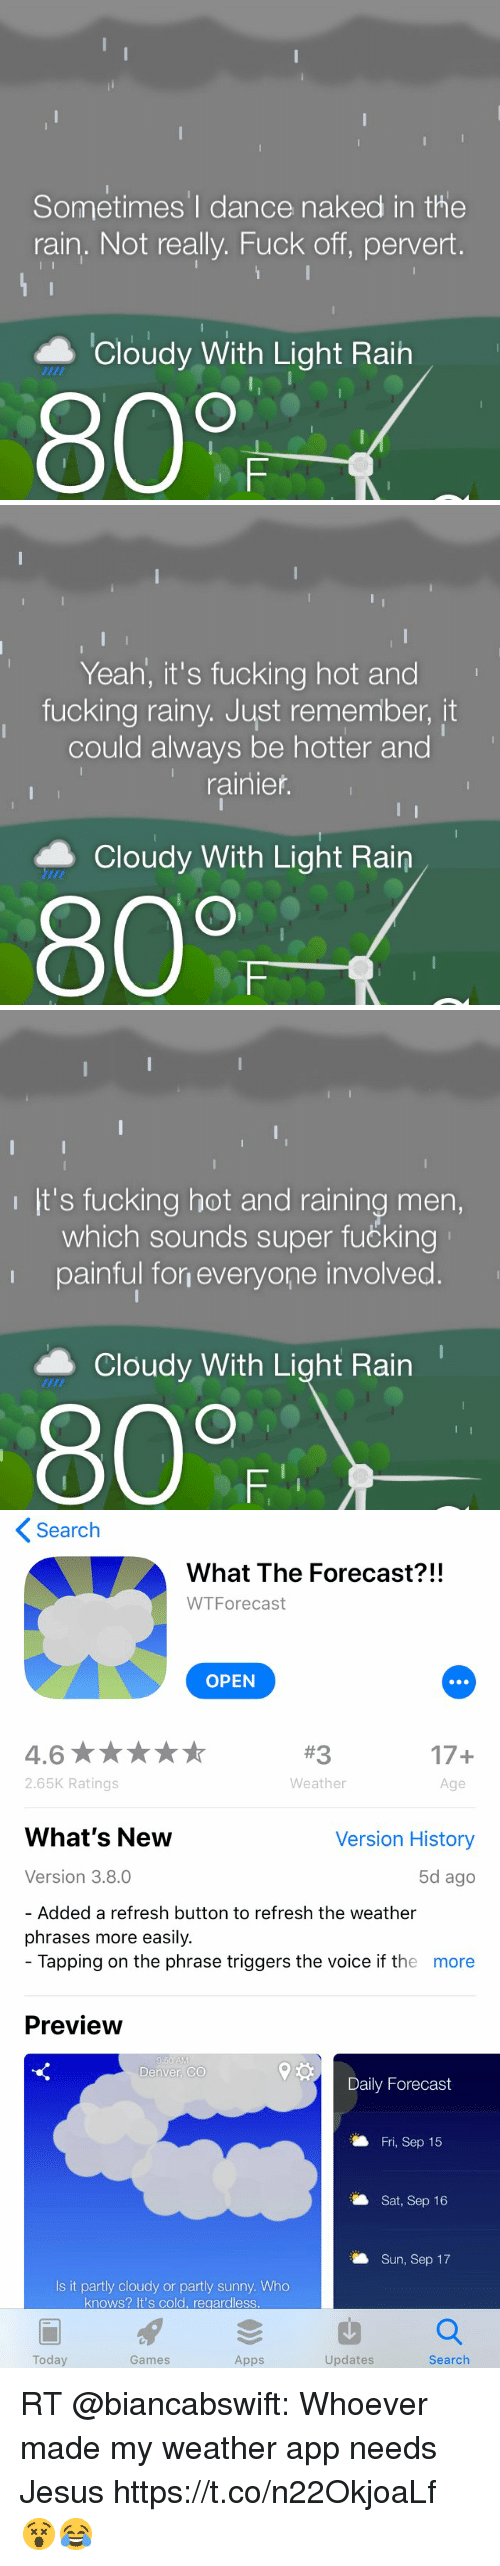 Fucking, Funny, and Jesus: Sometimes'I dance naked in the  rain. Not really. Fuck off, pervert.  ▲ Cloudy With Light Rain  800   Yeah, it's fucking hot and  fucking rainy, Just remember, it  could always be hotter and  rainier  Cloudy With Light Rain  80F   It's fucking hot and raining men,  which sounds super fučking  painful fon everyone involved.  ▲ Cloudy With Light Rain  800   Search  What The Forecast?!!  WTForecast  OPEN  17+  Age  2.65K Ratings  Weather  What's New  Version History  Version 3.8.0  5d ago  Added a refresh button to refresh the weather  phrases more easily.  Tapping on the phrase triggers the voice if the  more  Preview  Denver, CO  Daily Forecast  Fri, Sep 15  Sat, Sep 16  Sun, Sep 17  Is it partly cloudy or partly sunny. Who  knows? It's cold, regardless  Today  Games  Apps  Updates  Search RT @biancabswift: Whoever made my weather app needs Jesus https://t.co/n22OkjoaLf 😵😂